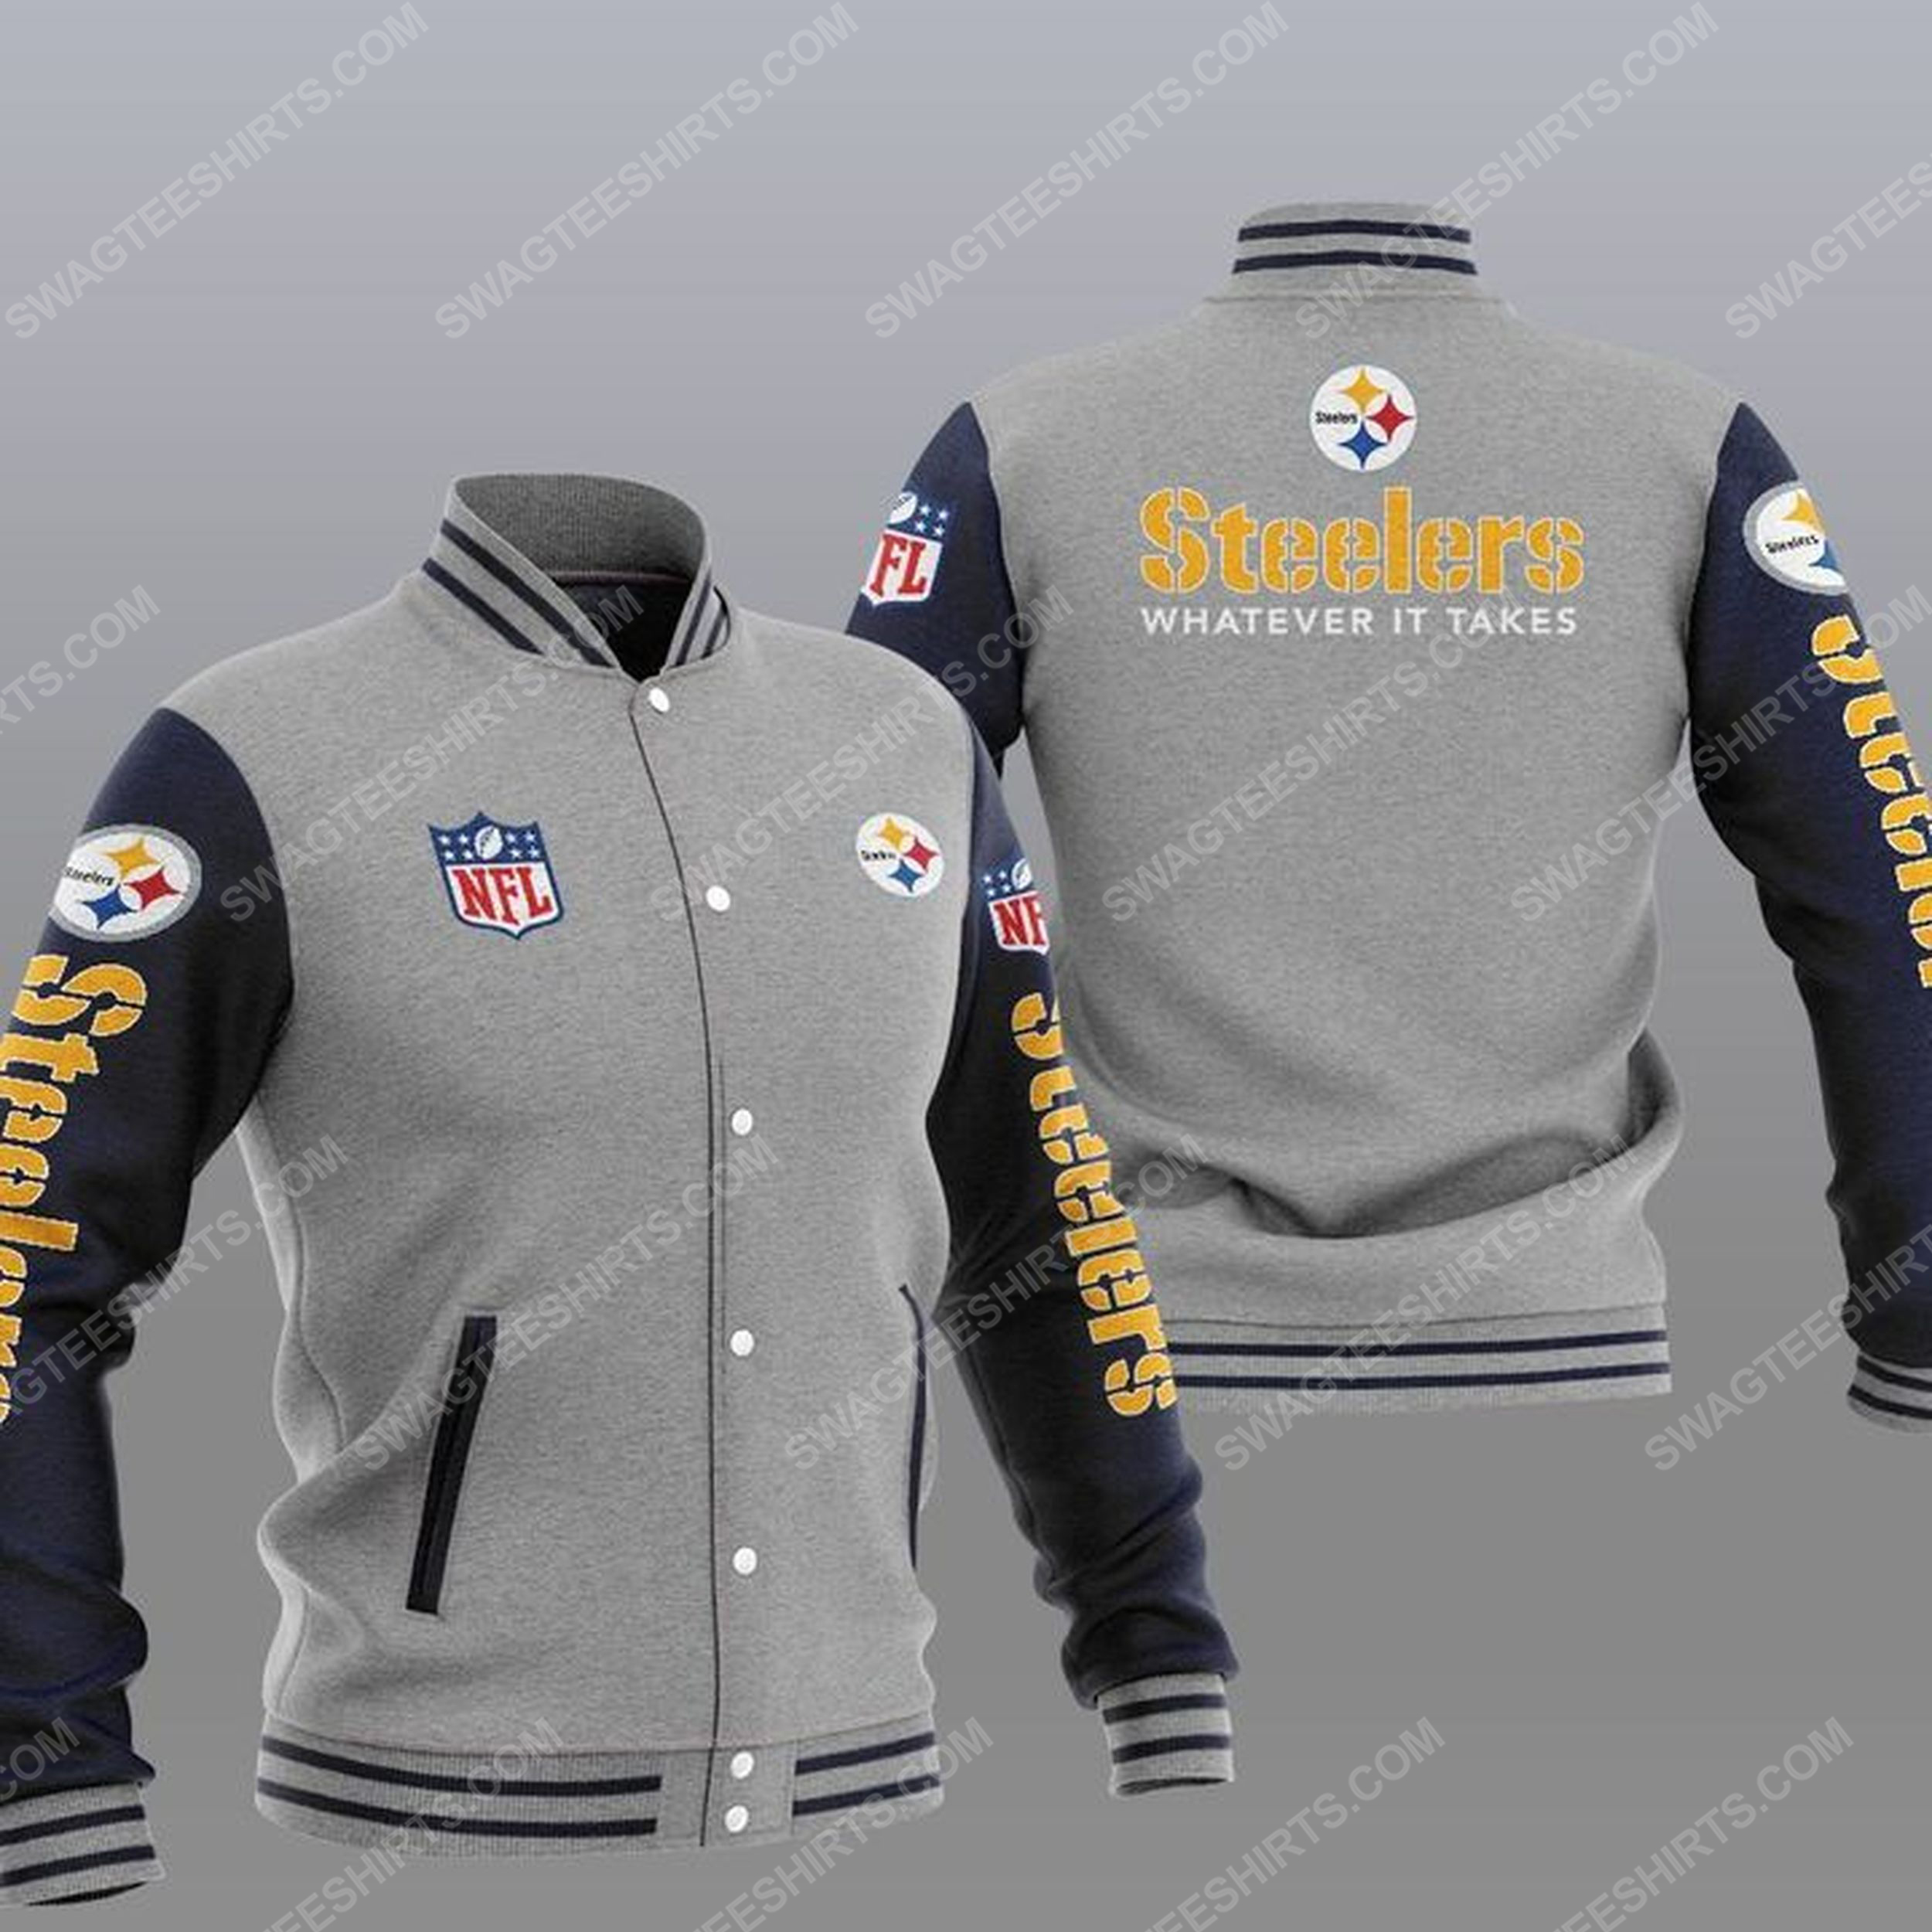 Pittsburgh steelers whatever it takes all over print baseball jacket - gray 1